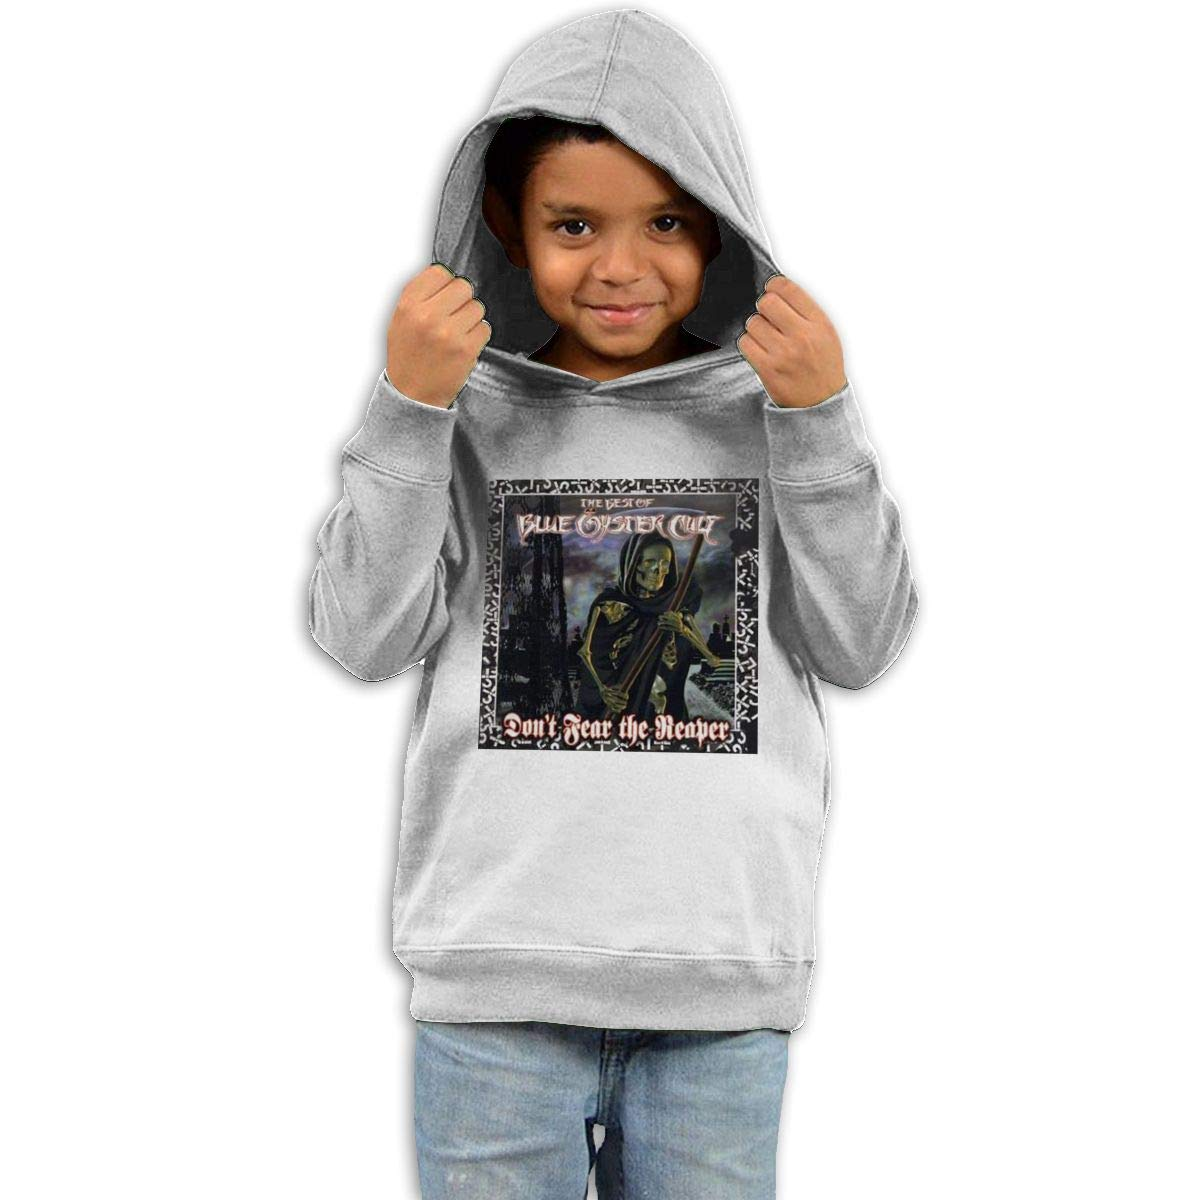 Stacy J. Payne Toddler Blue Oyster Cult Dont Fear The Reaper Funny Hoody42 White